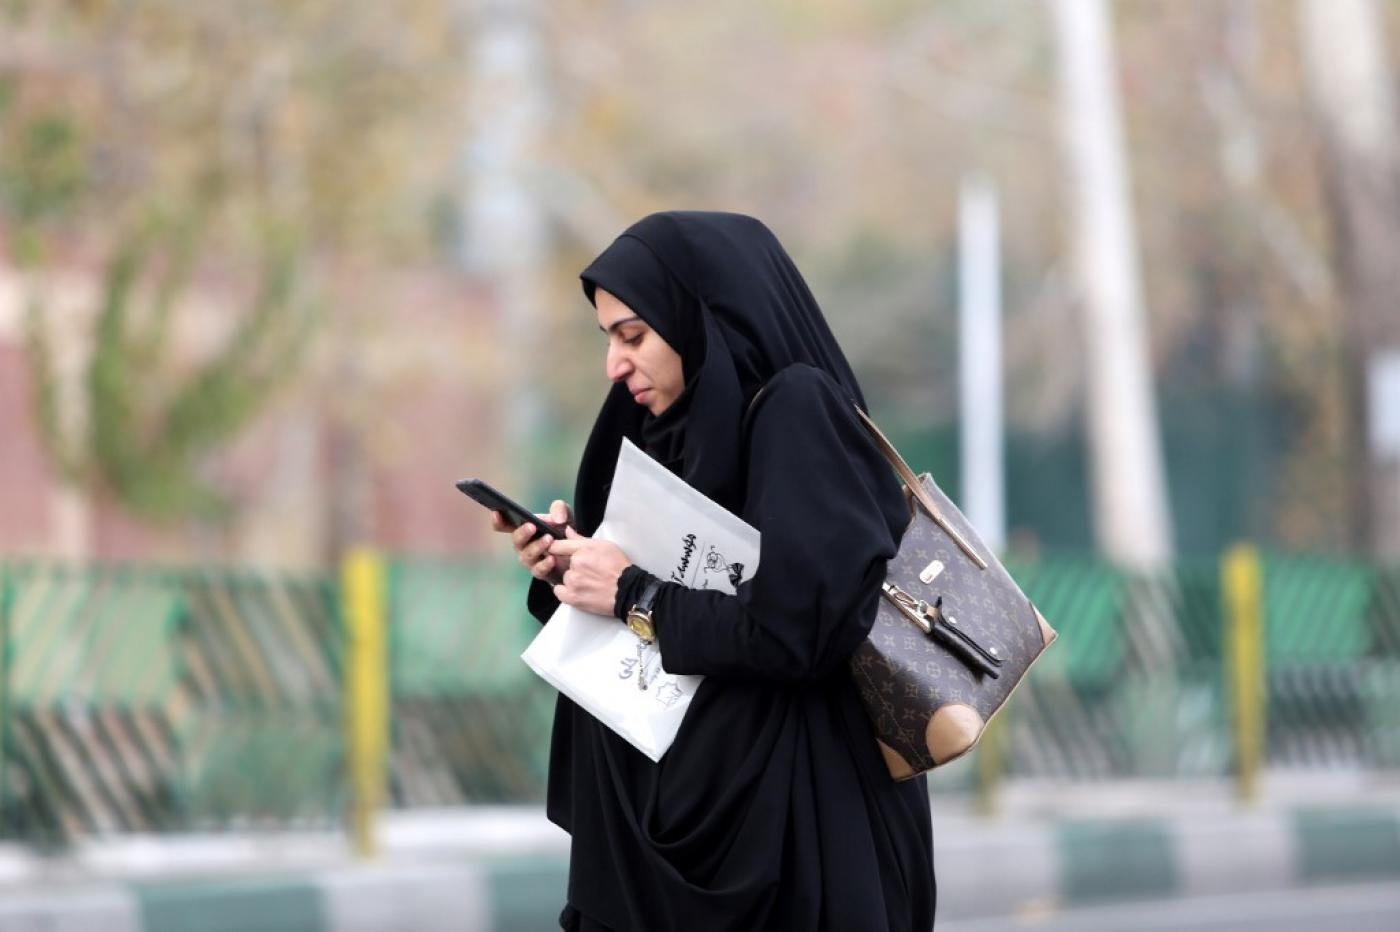 Iran curbs internet before possible new protests